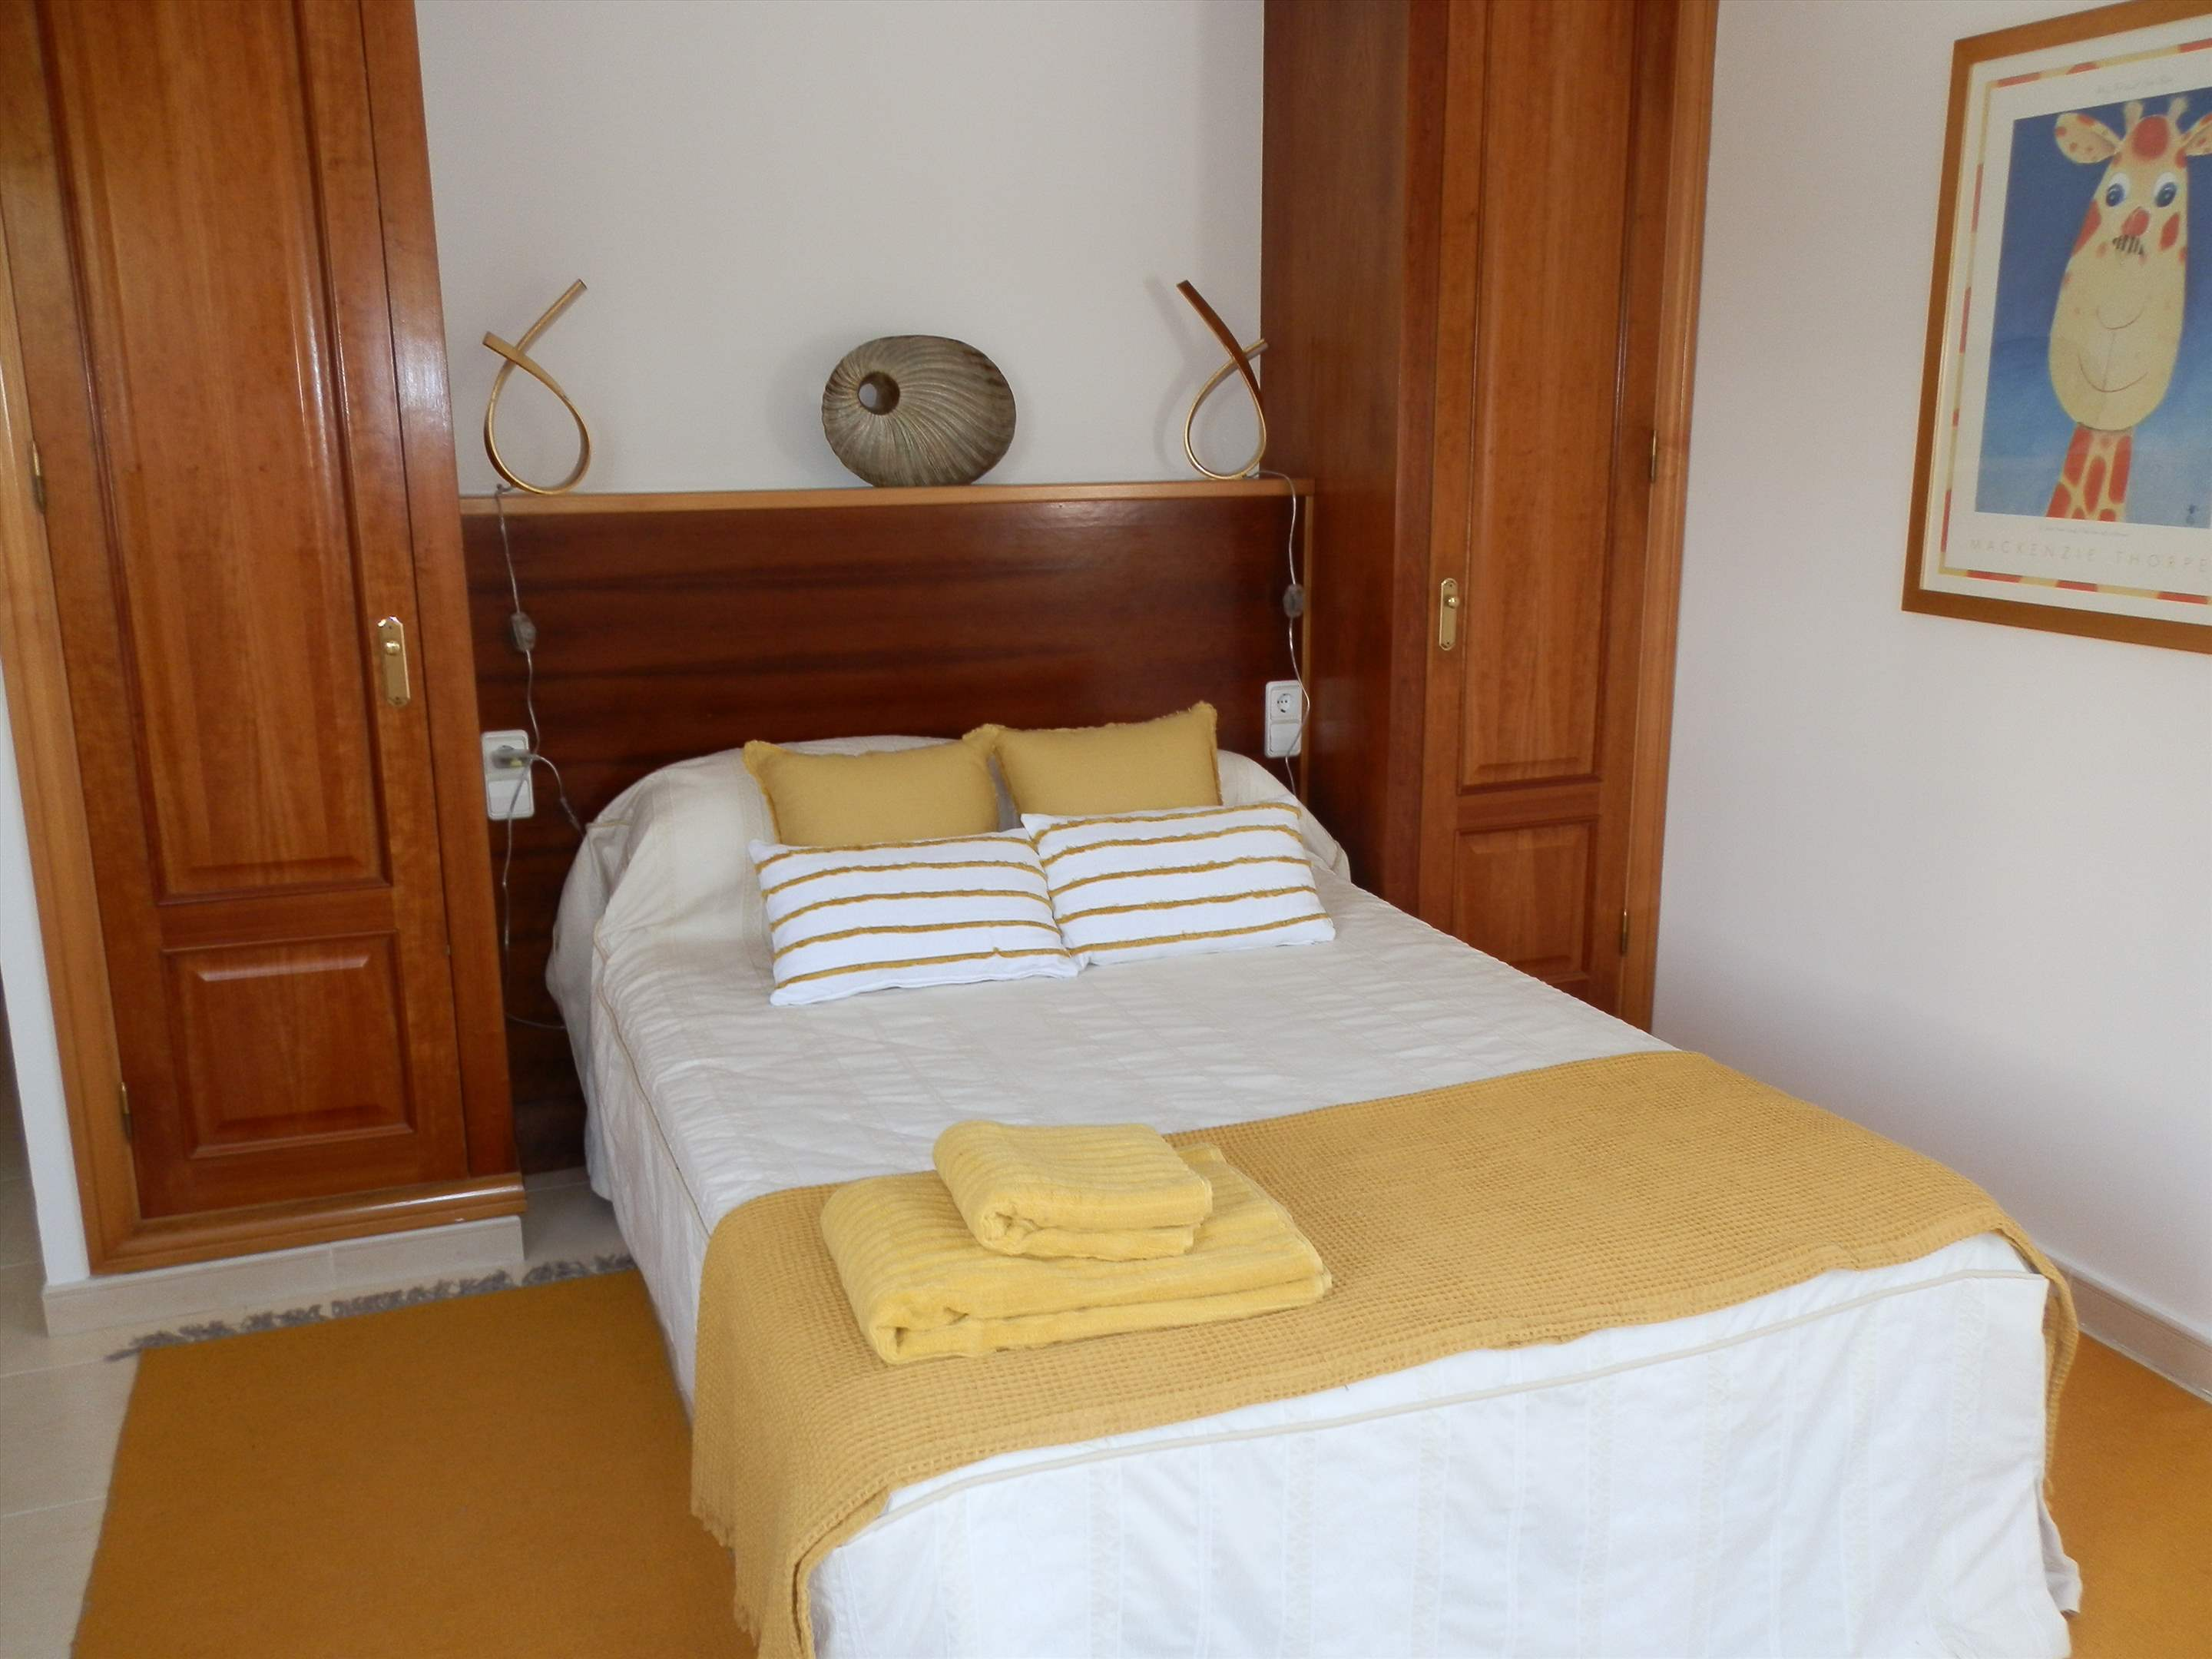 Son De Mar, 5 bedroom villa in Mahon, San Luis & South East, Menorca Photo #33